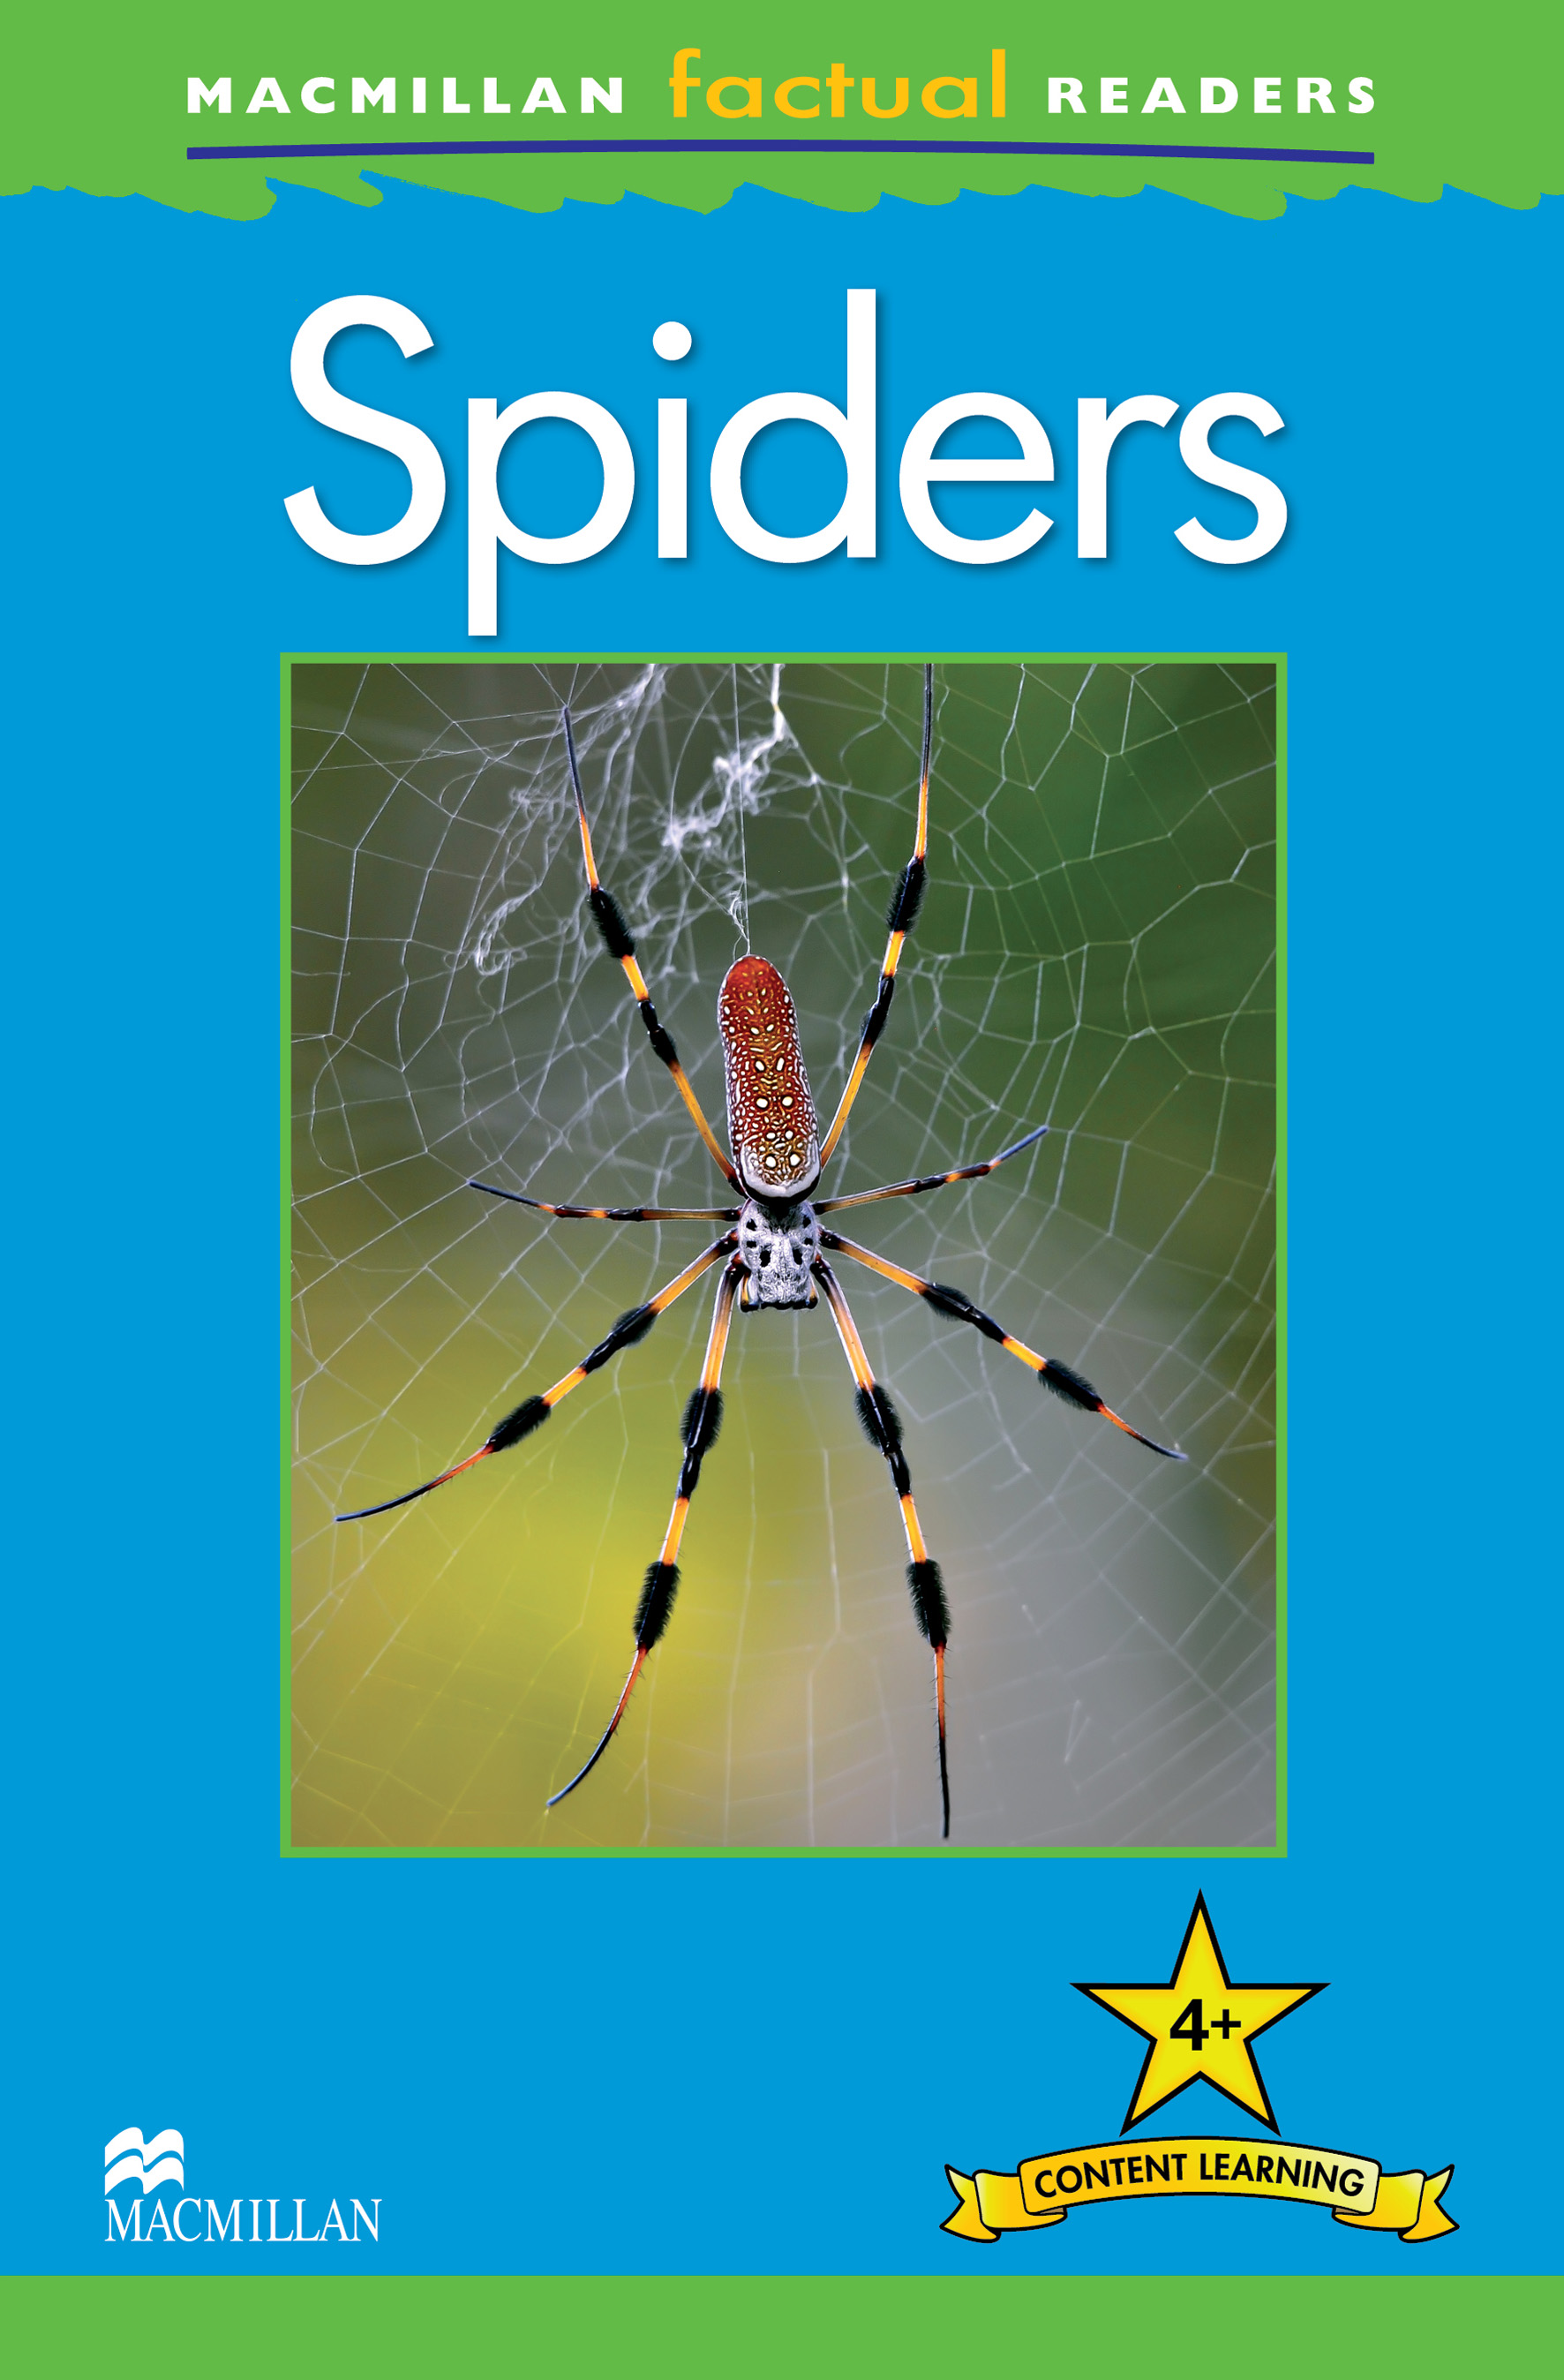 Macmillan Factual Readers: Spiders